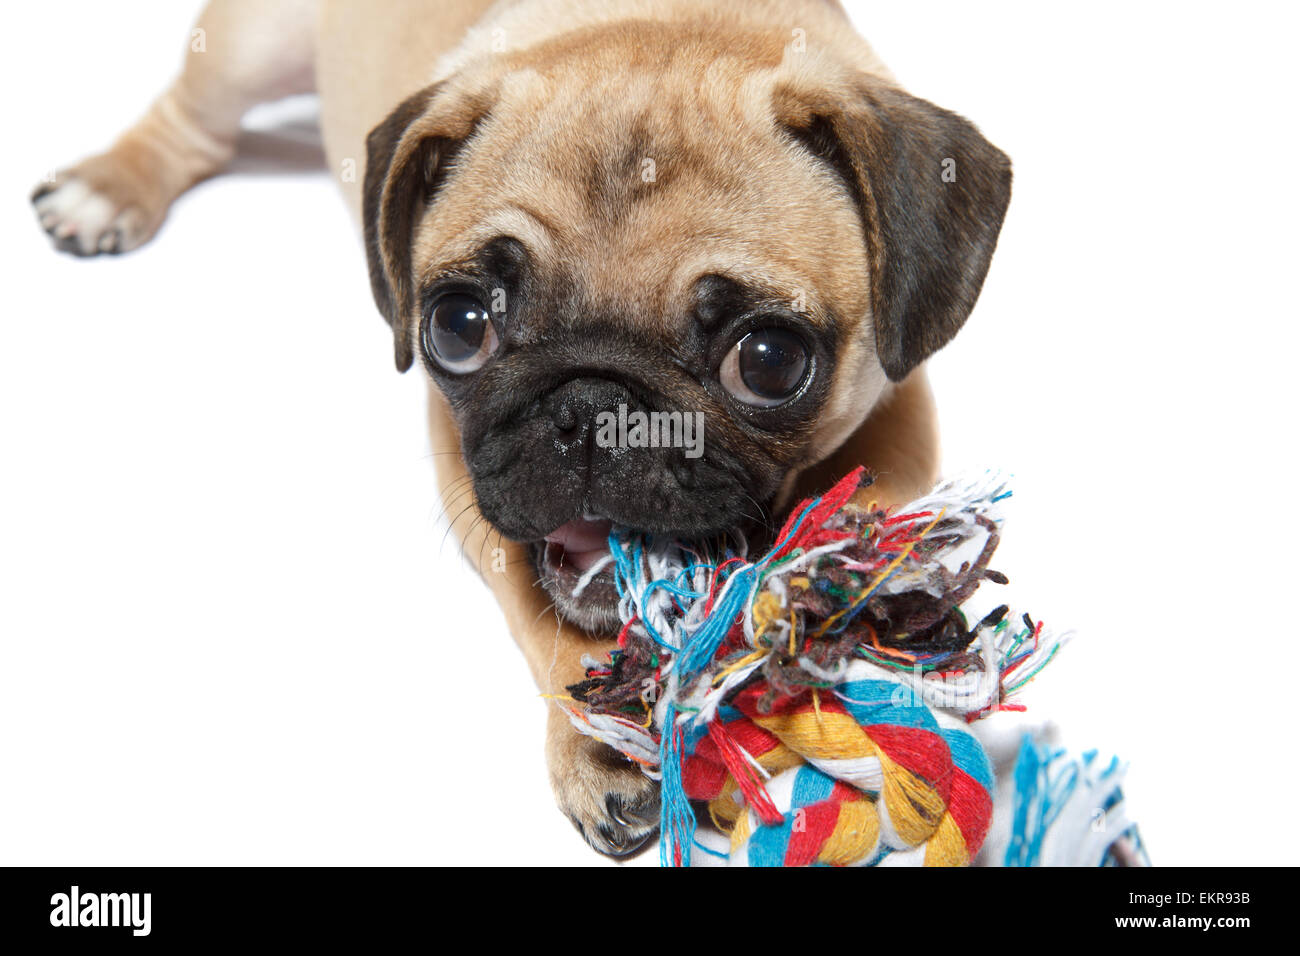 pug dog with a toy - Stock Image